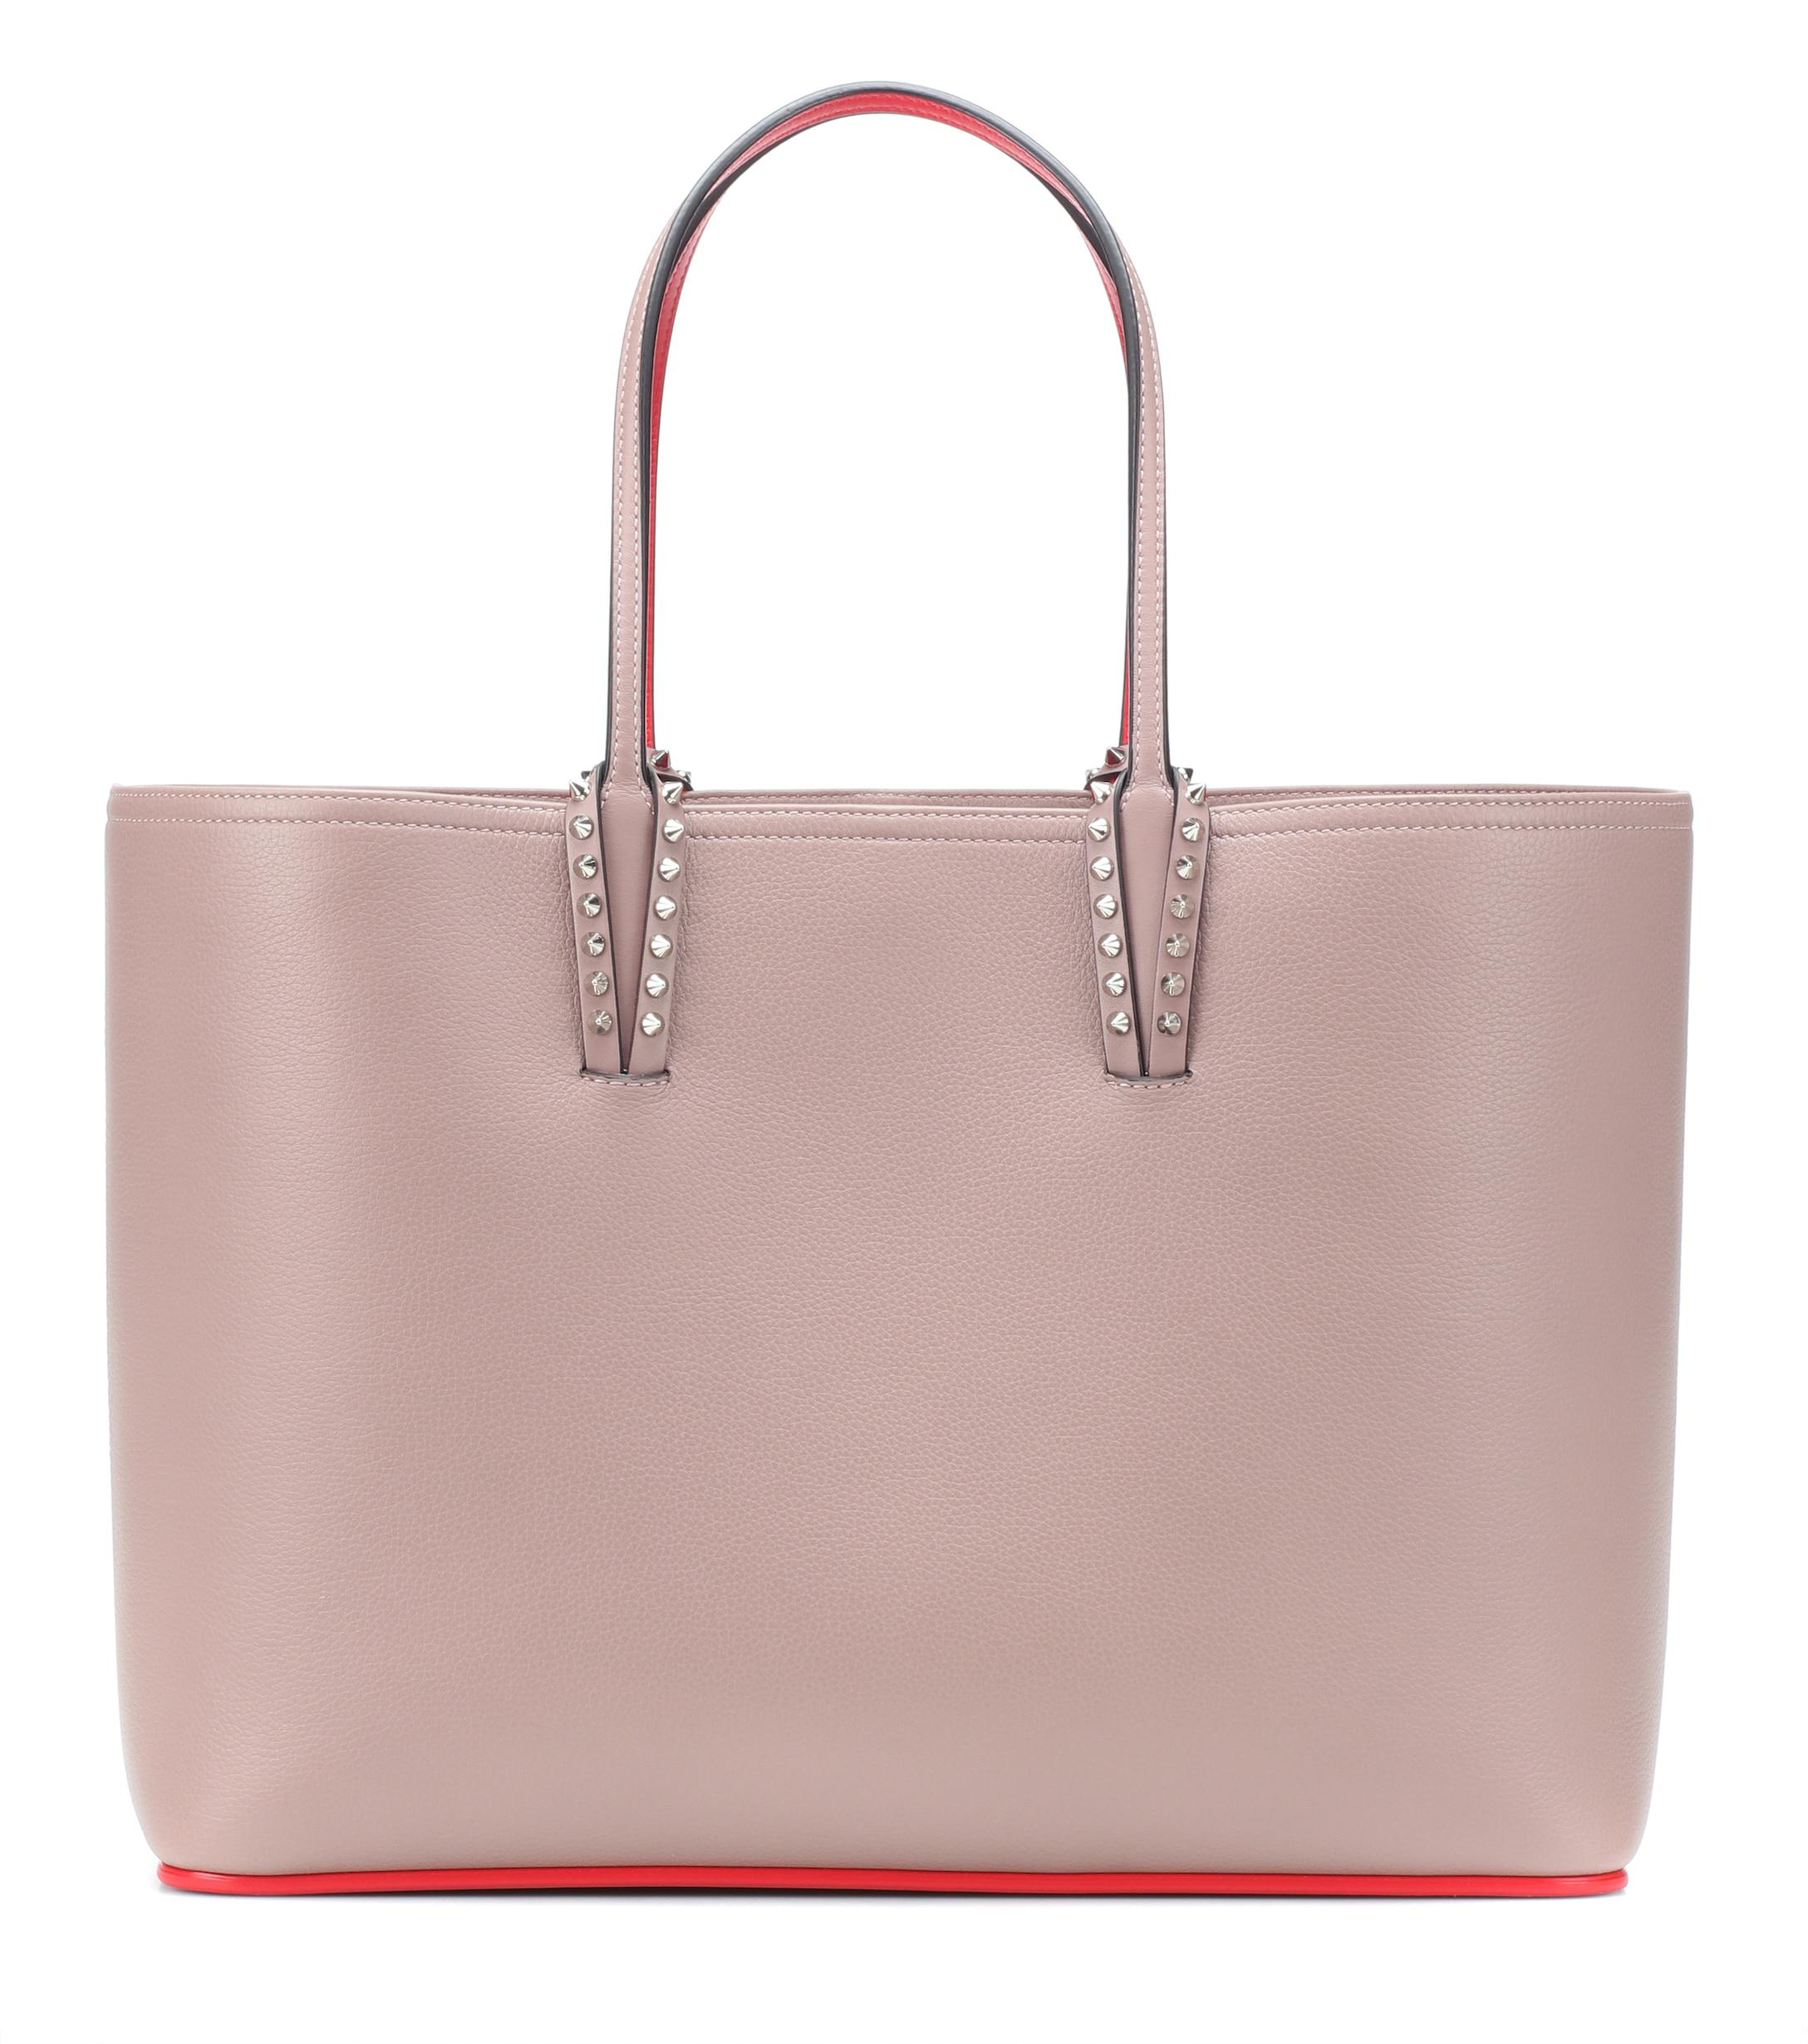 Lyst - Christian Louboutin Cabata Leather Tote - Save ... 4362c1ed31533